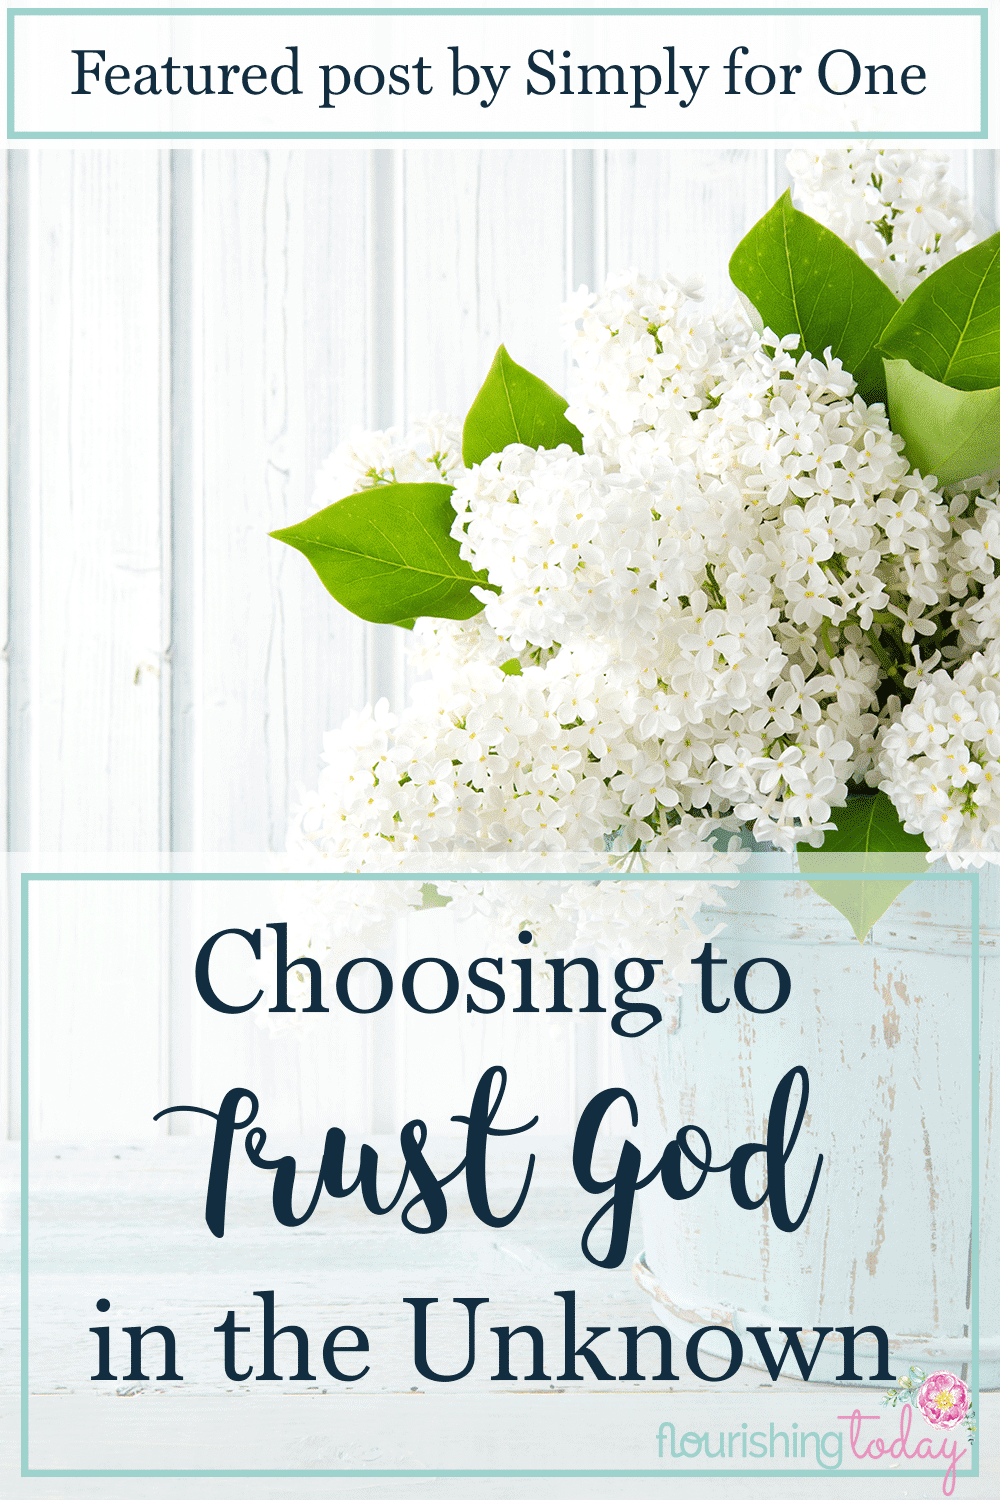 Do you find it difficult to trust to God in the unknown? How do you respond when the future is uncertain? Here are a few tips for learning to trust God.